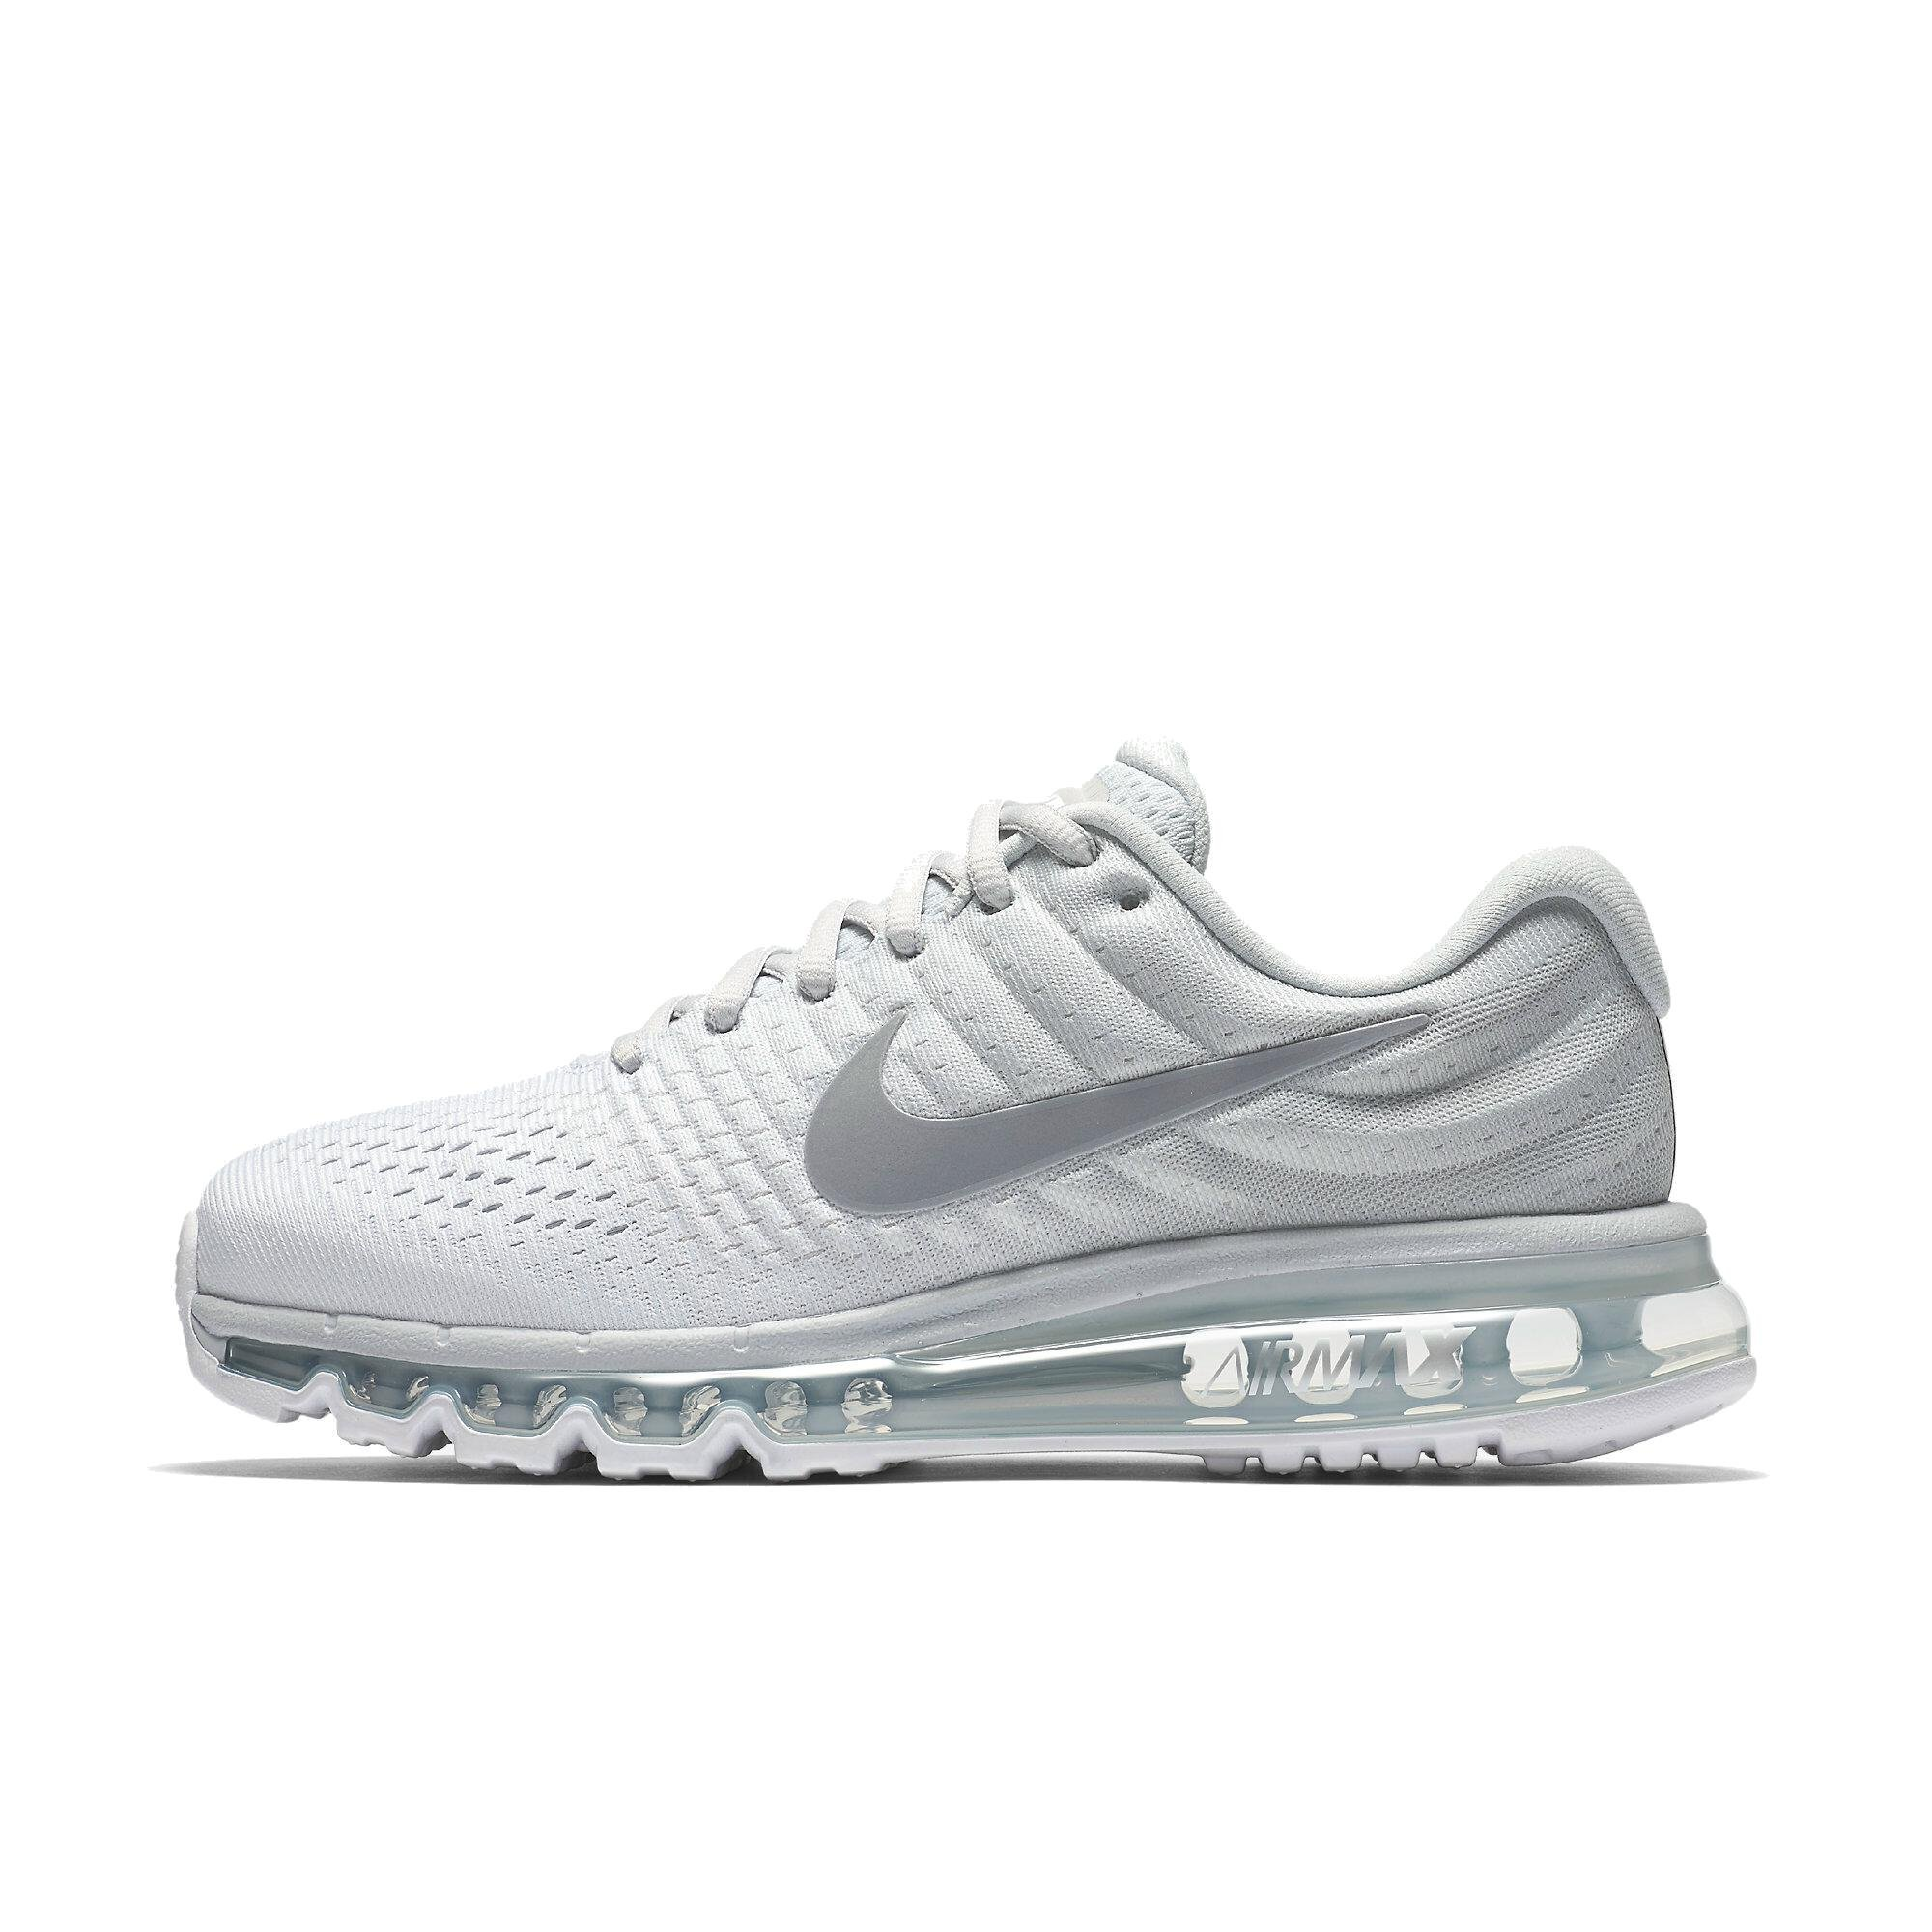 Nike Air Max 2017 84950-009 Pure Platinum/Wolf Grey-White Women's US 8 by Nike